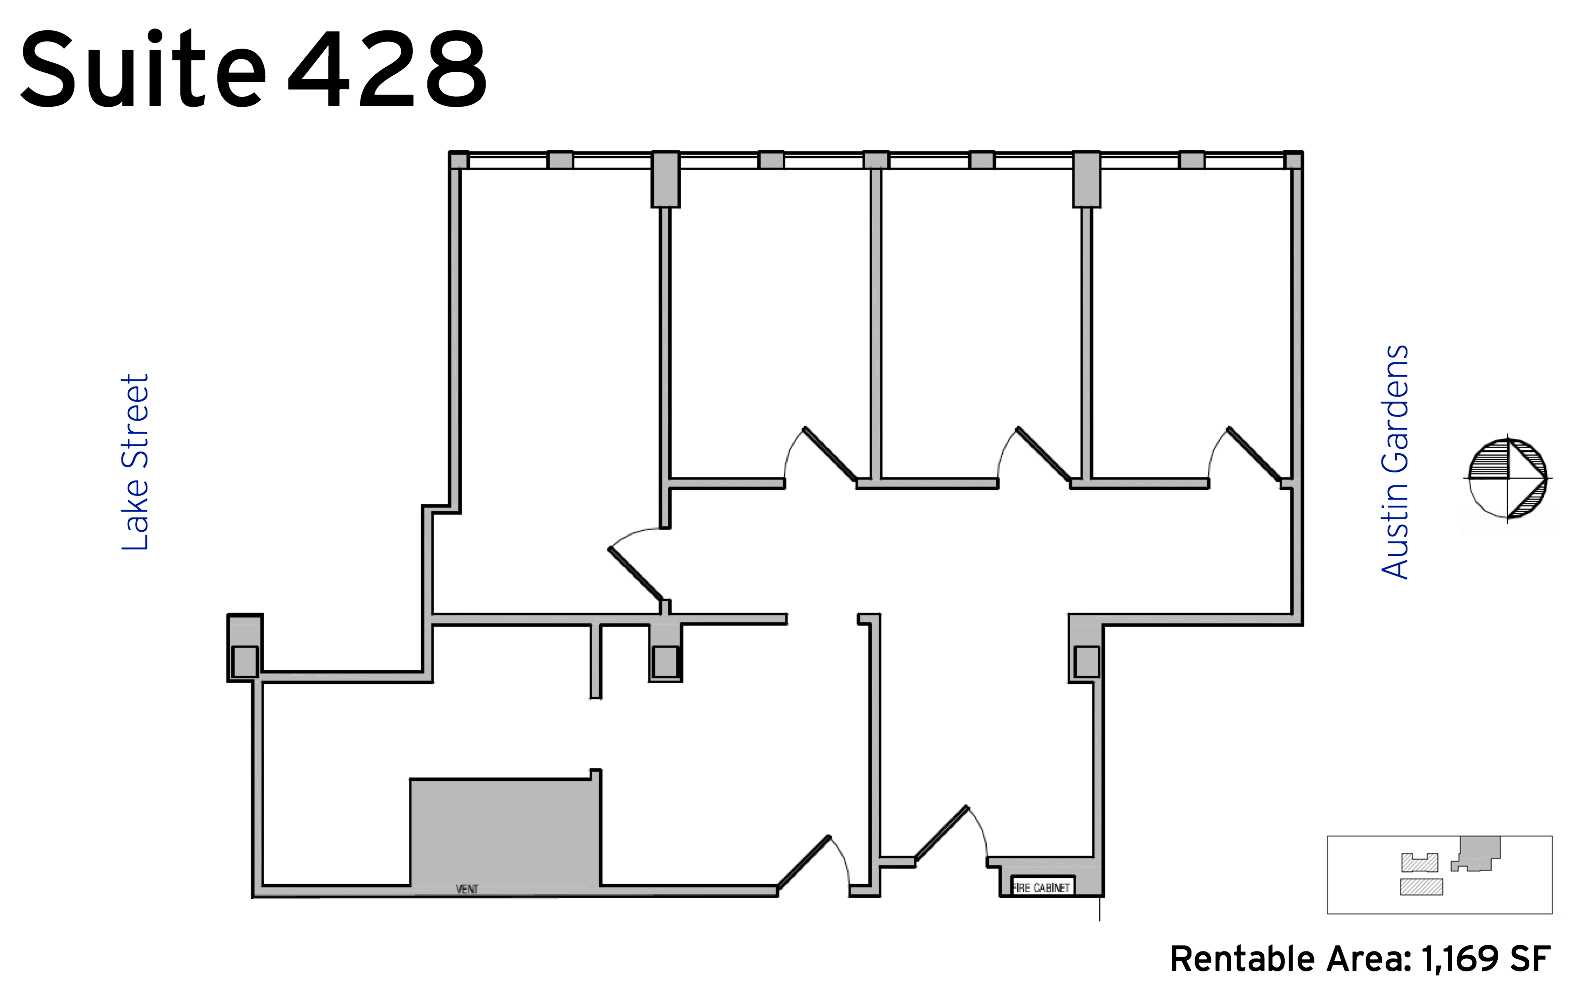 Suite 428 - 1010 Lake Street available office space floor plan